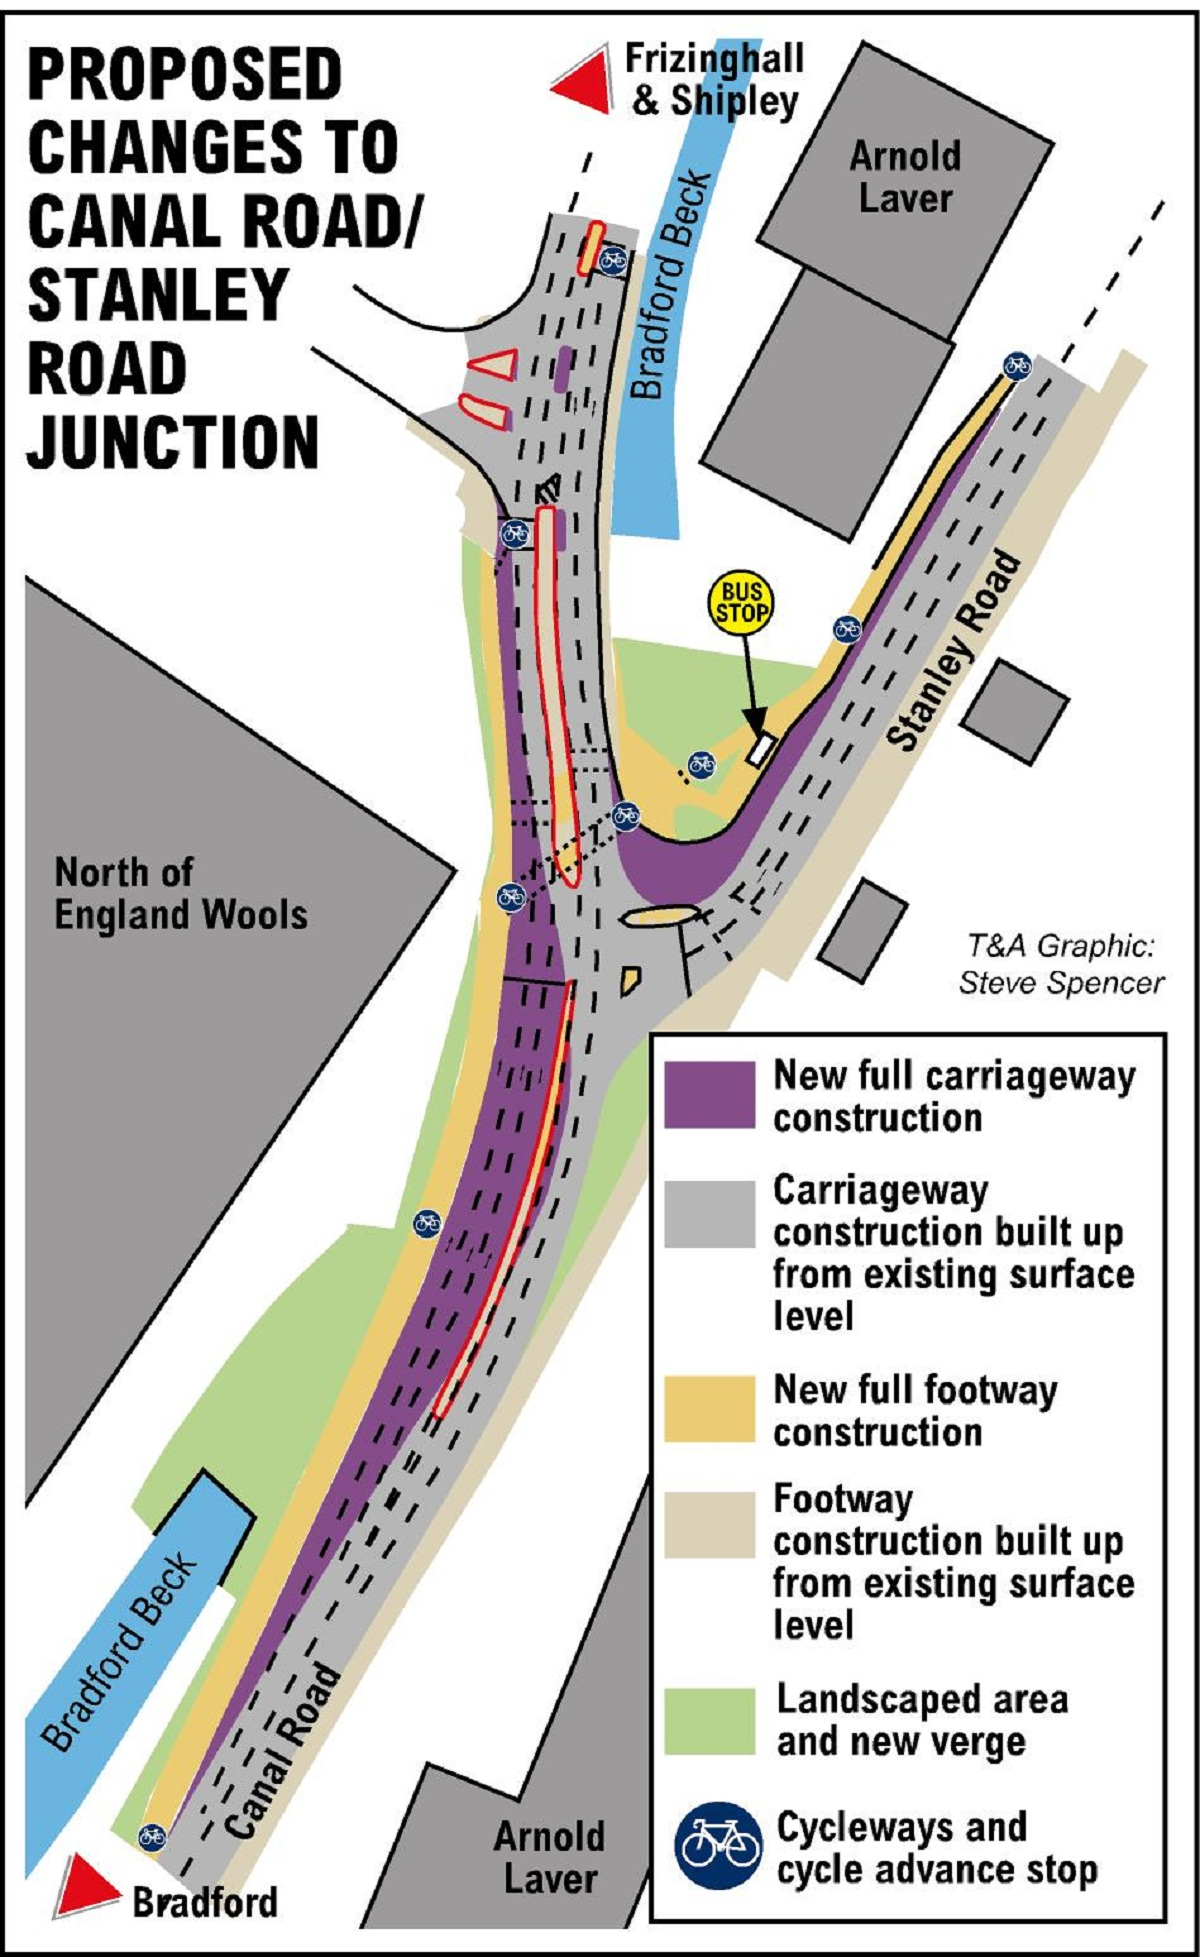 The plan for junction improvements at Canal Road/Stanley Road